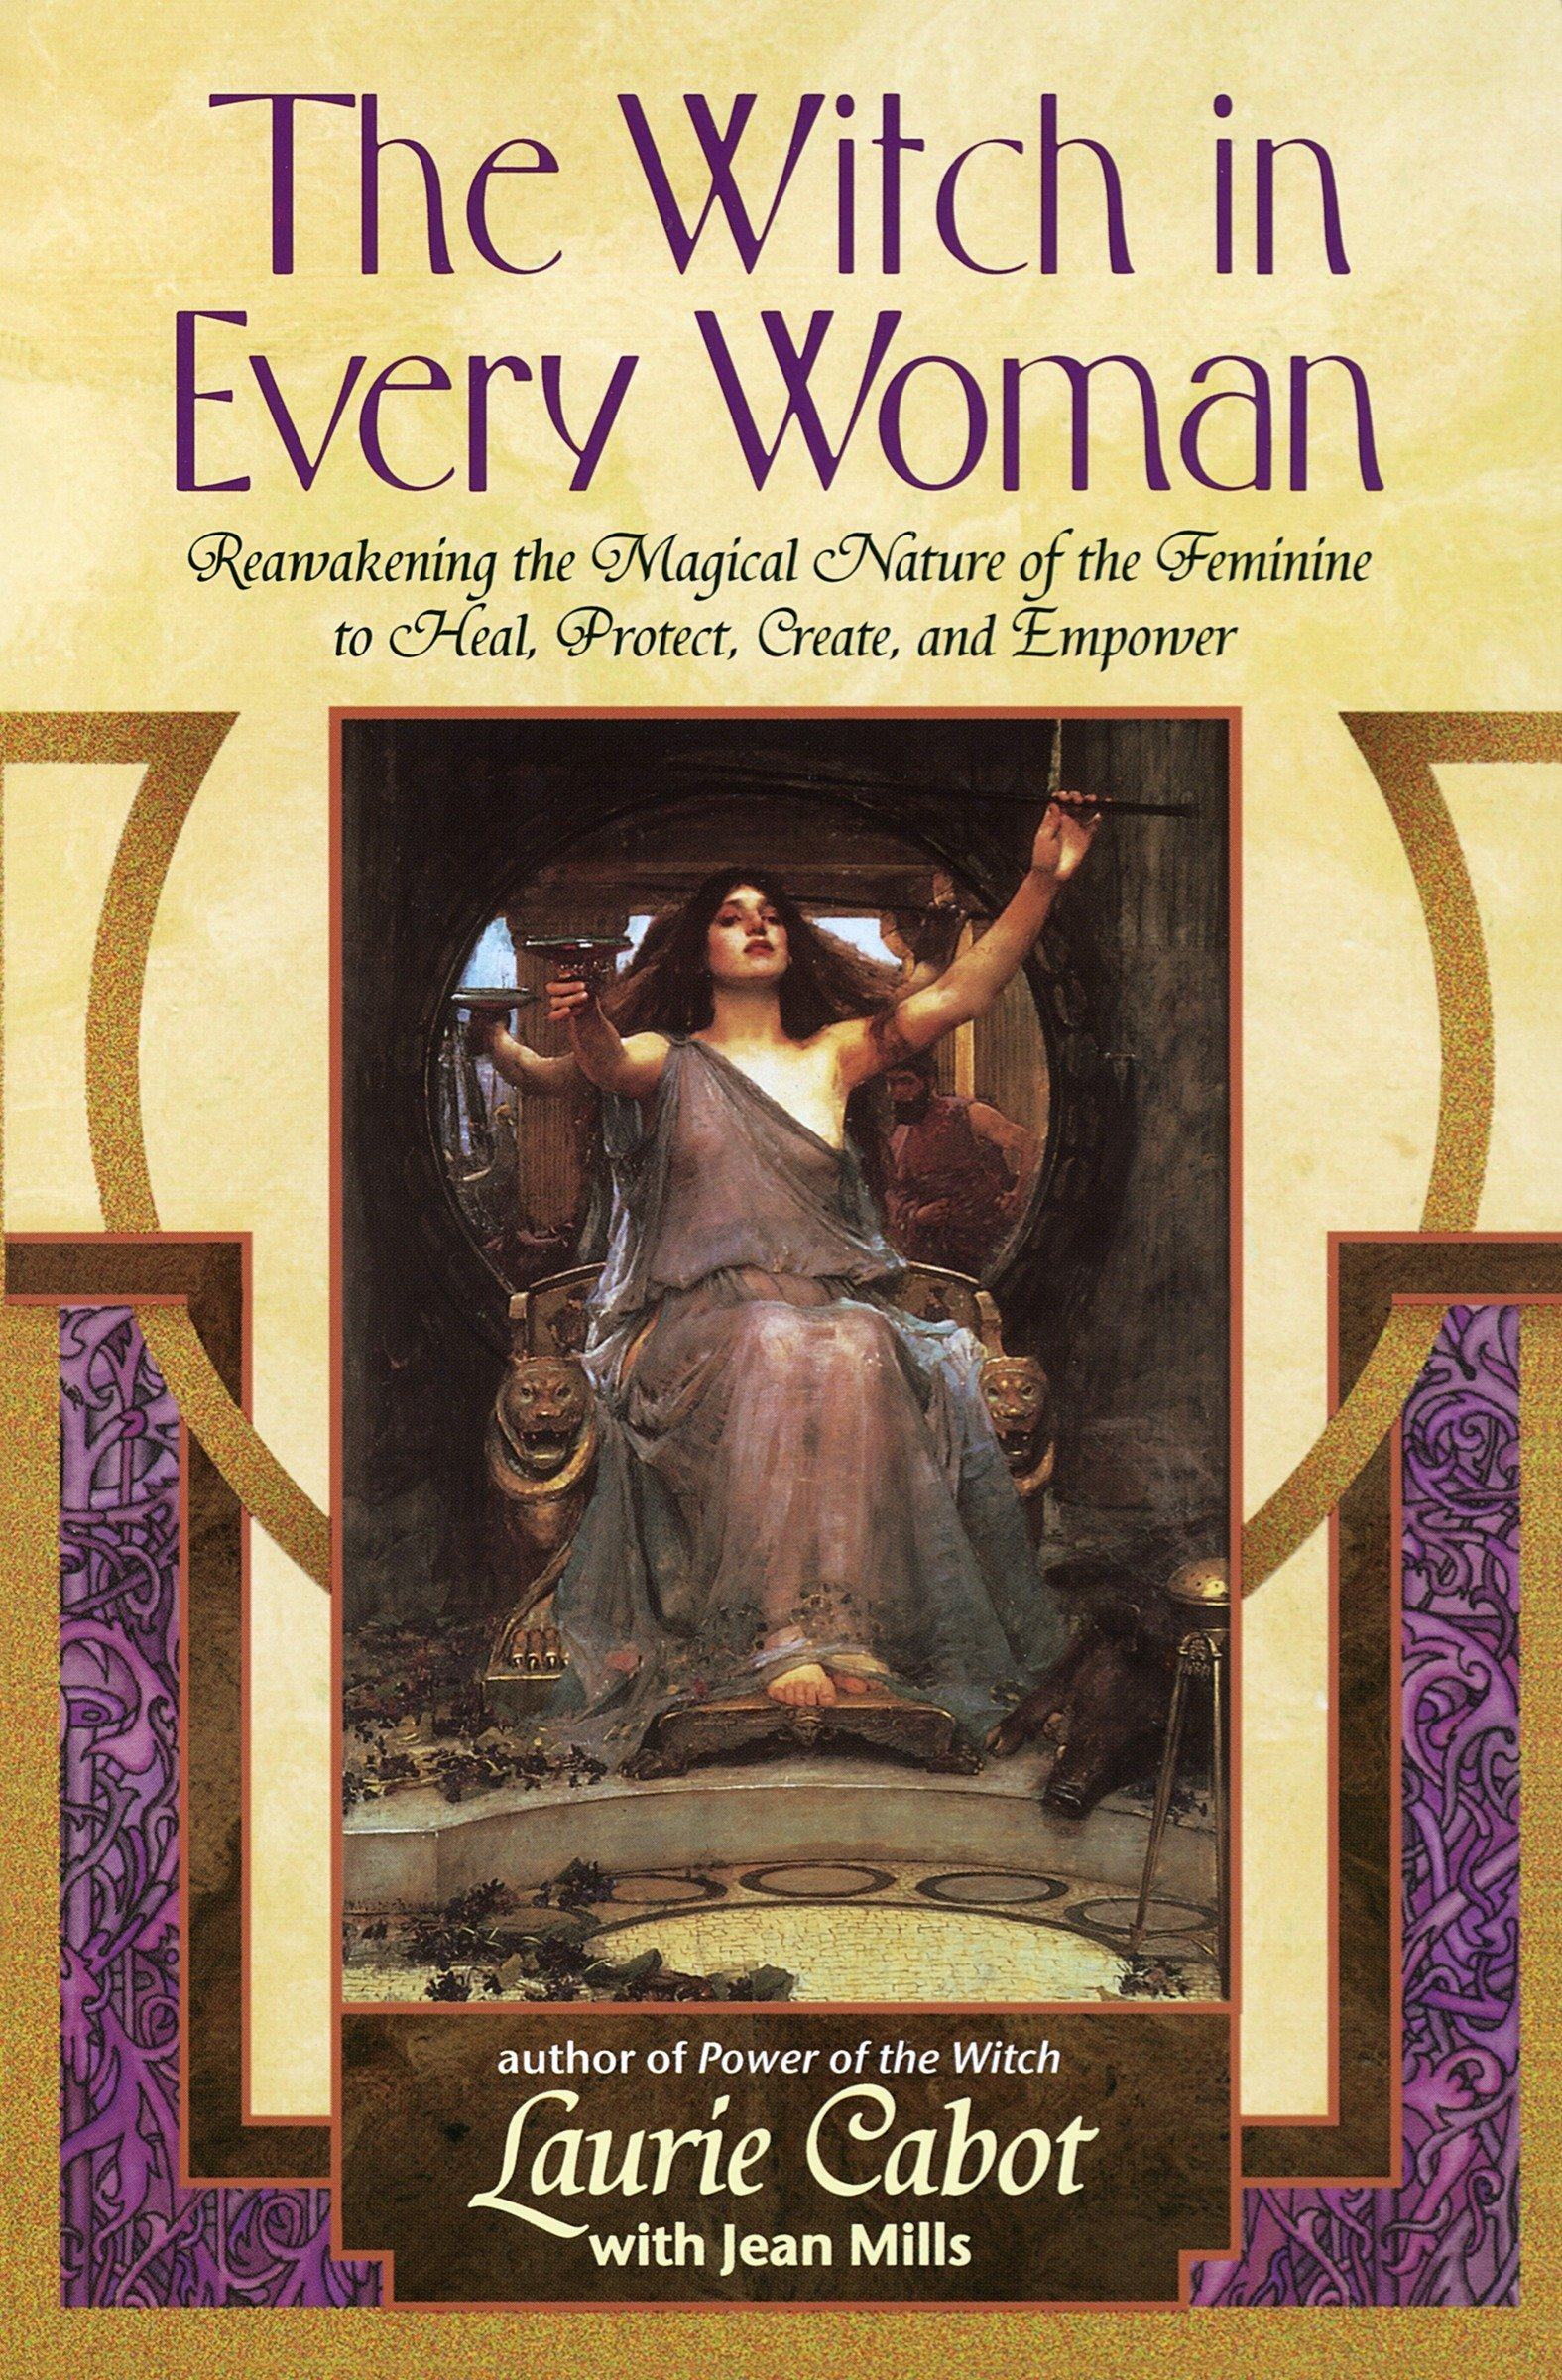 The Witch in Every Woman: Reawakening the Magical